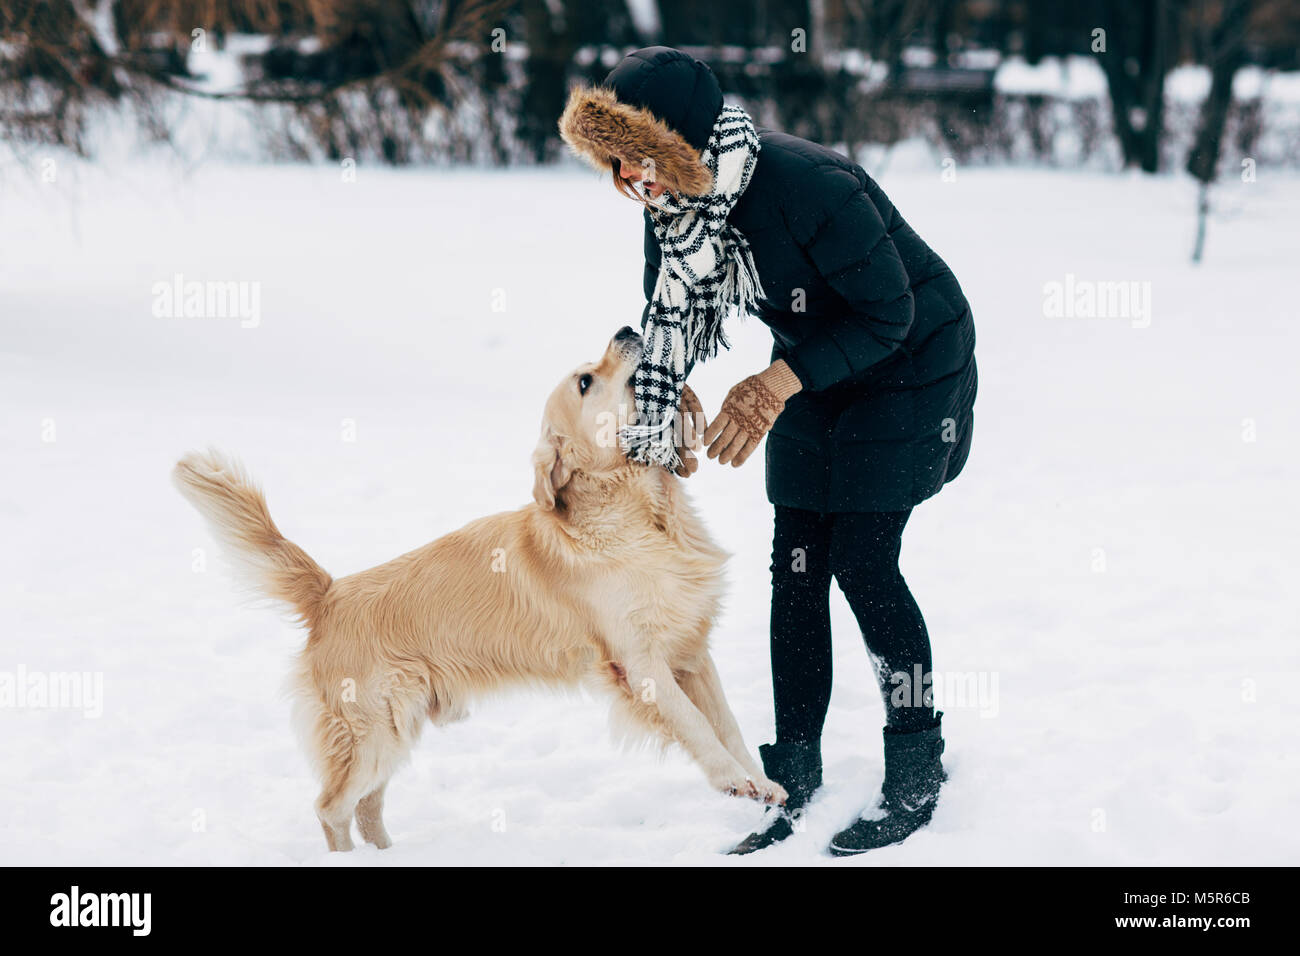 Photo of woman in black jacket with retriever walking in winter park - Stock Image